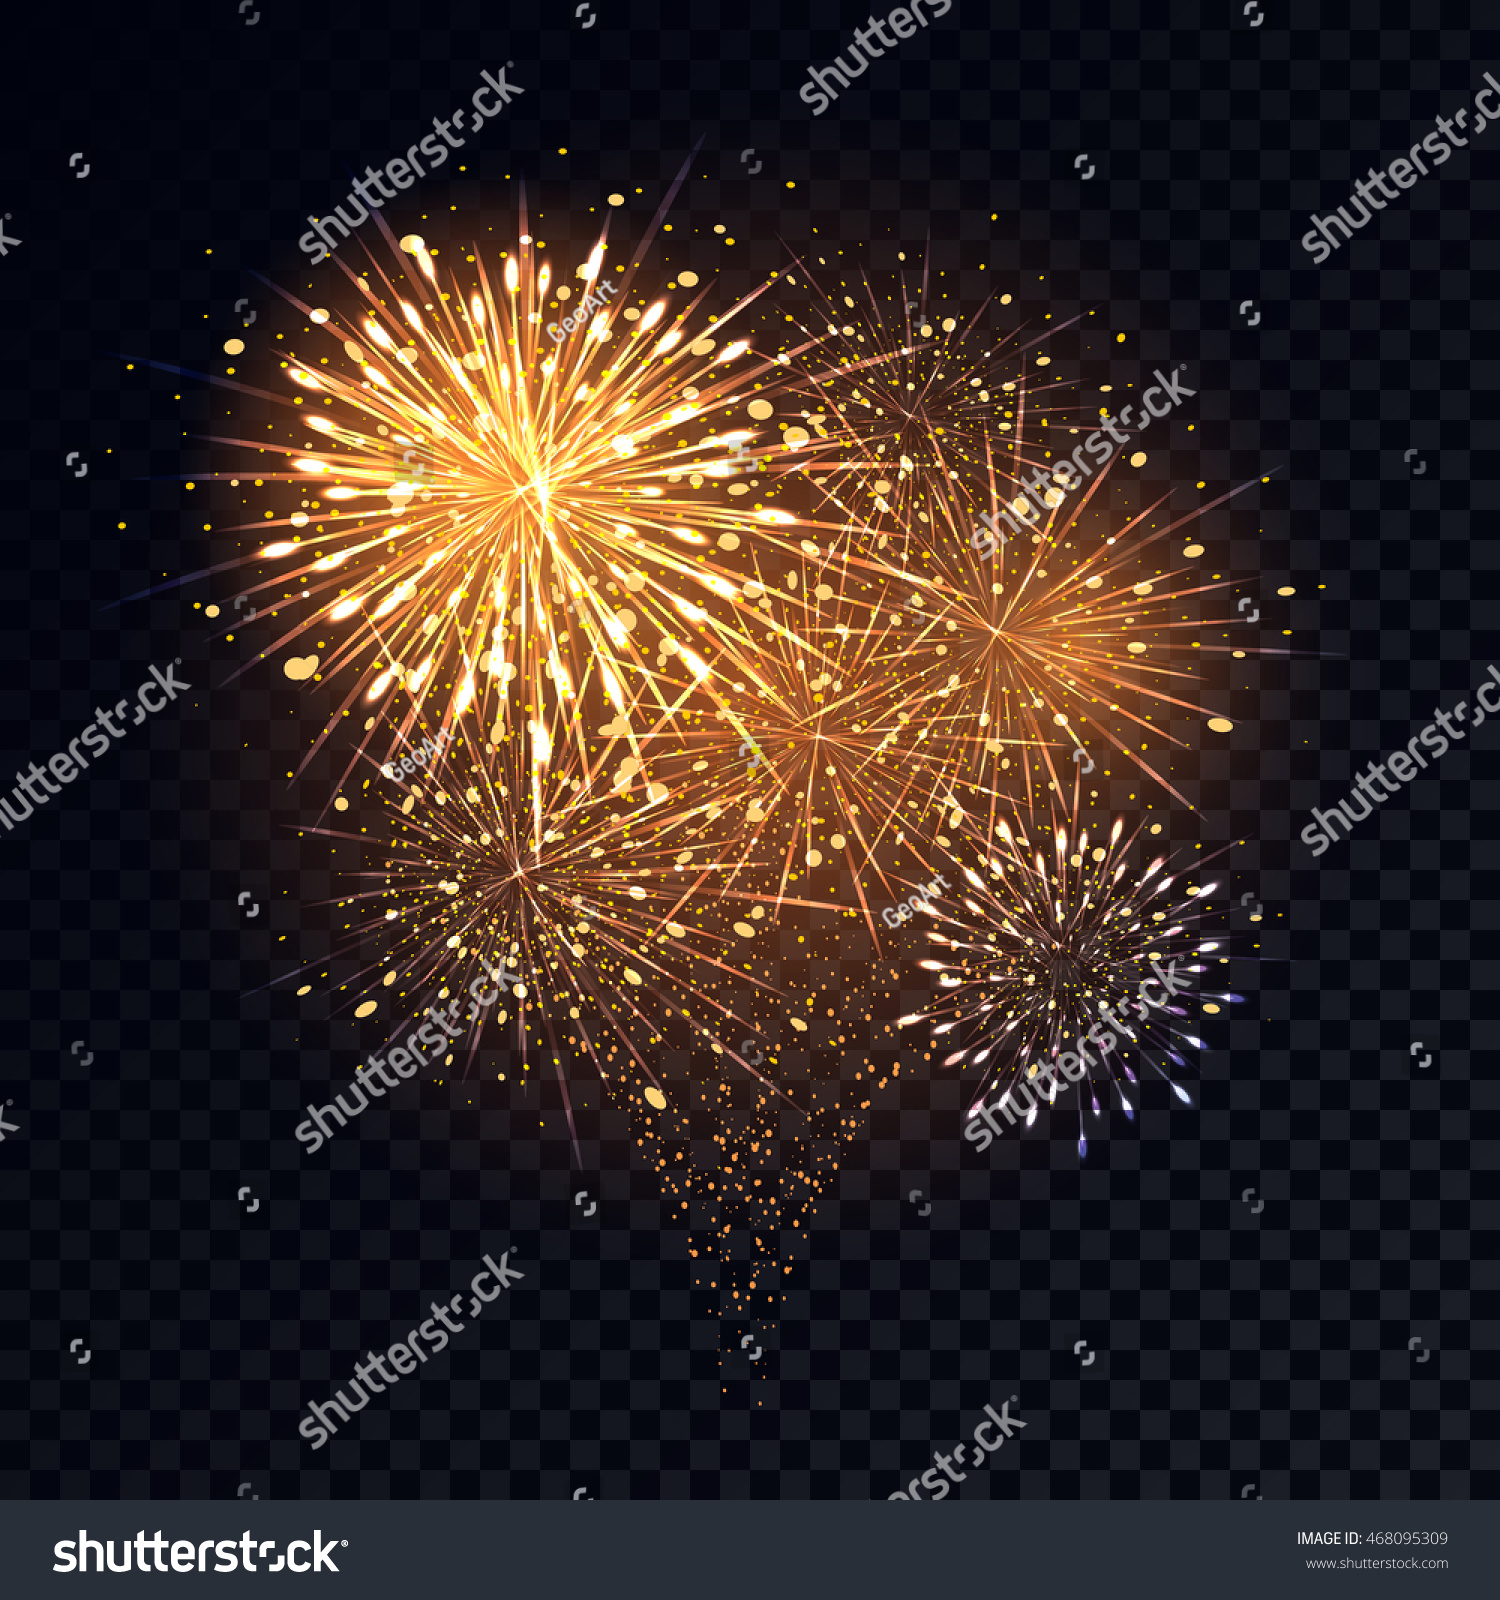 abstract golden fireworks explosion on transparent background